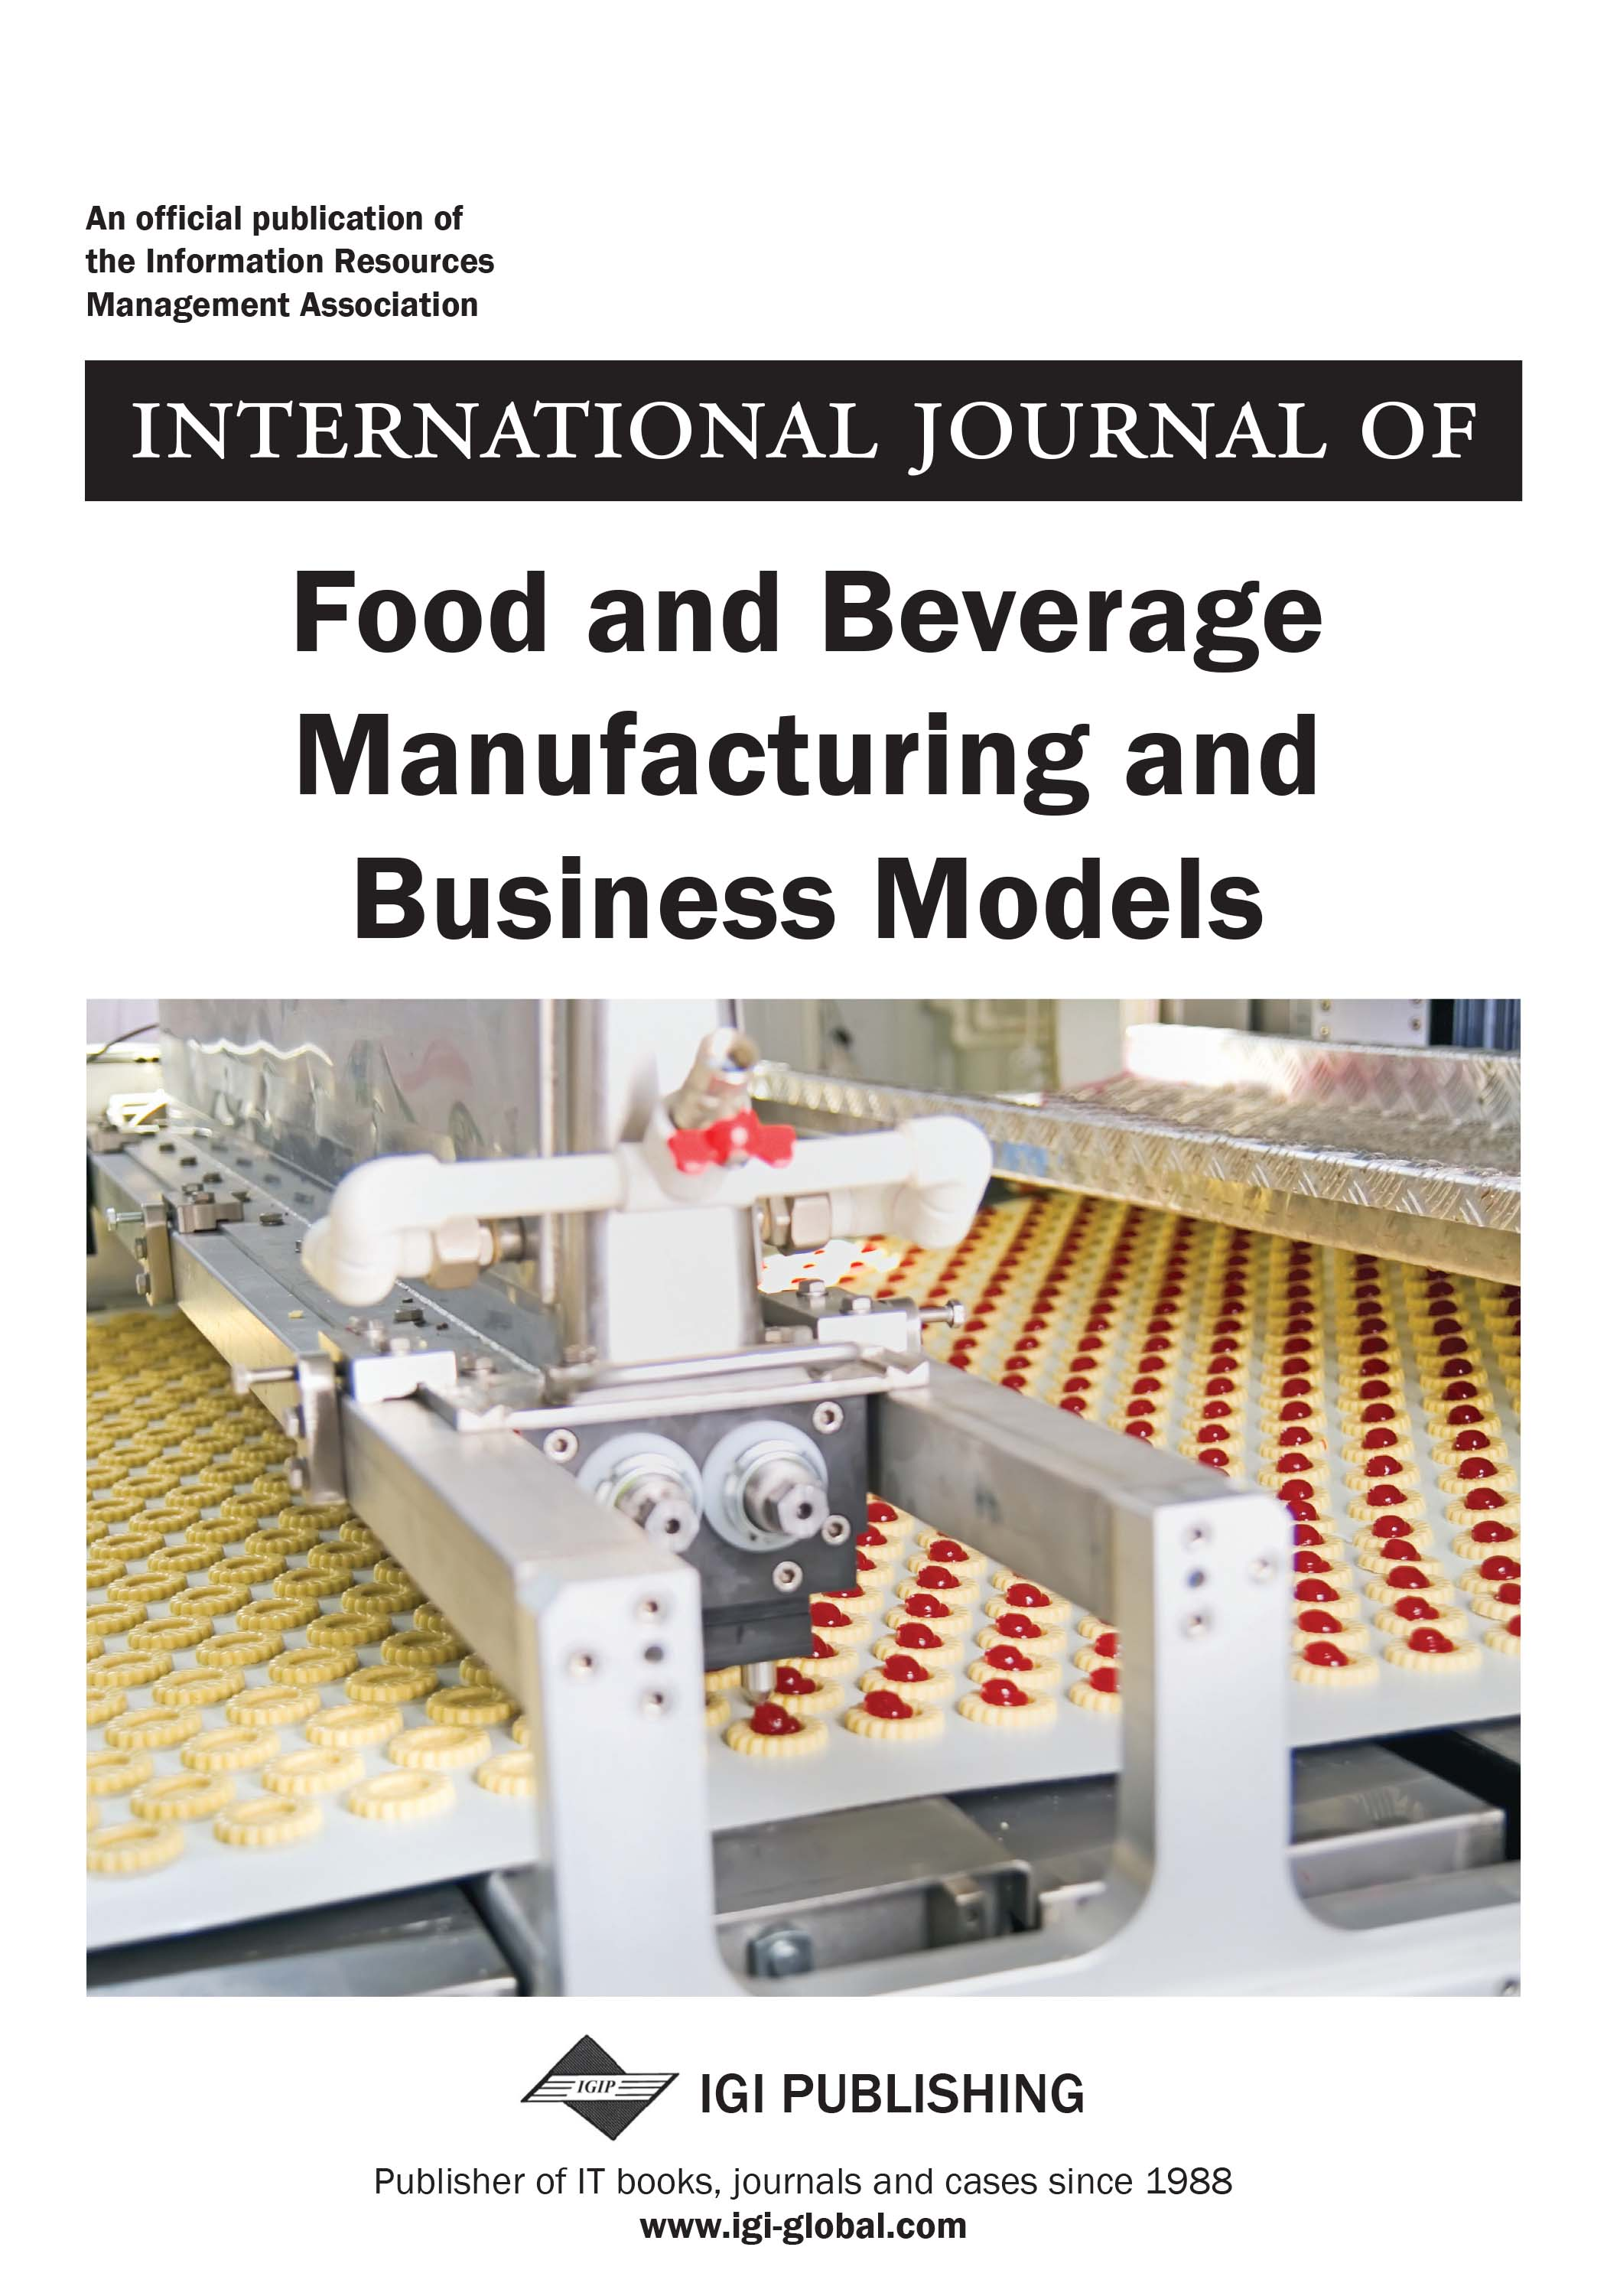 International Journal of Food and Beverage Manufacturing and Business Models